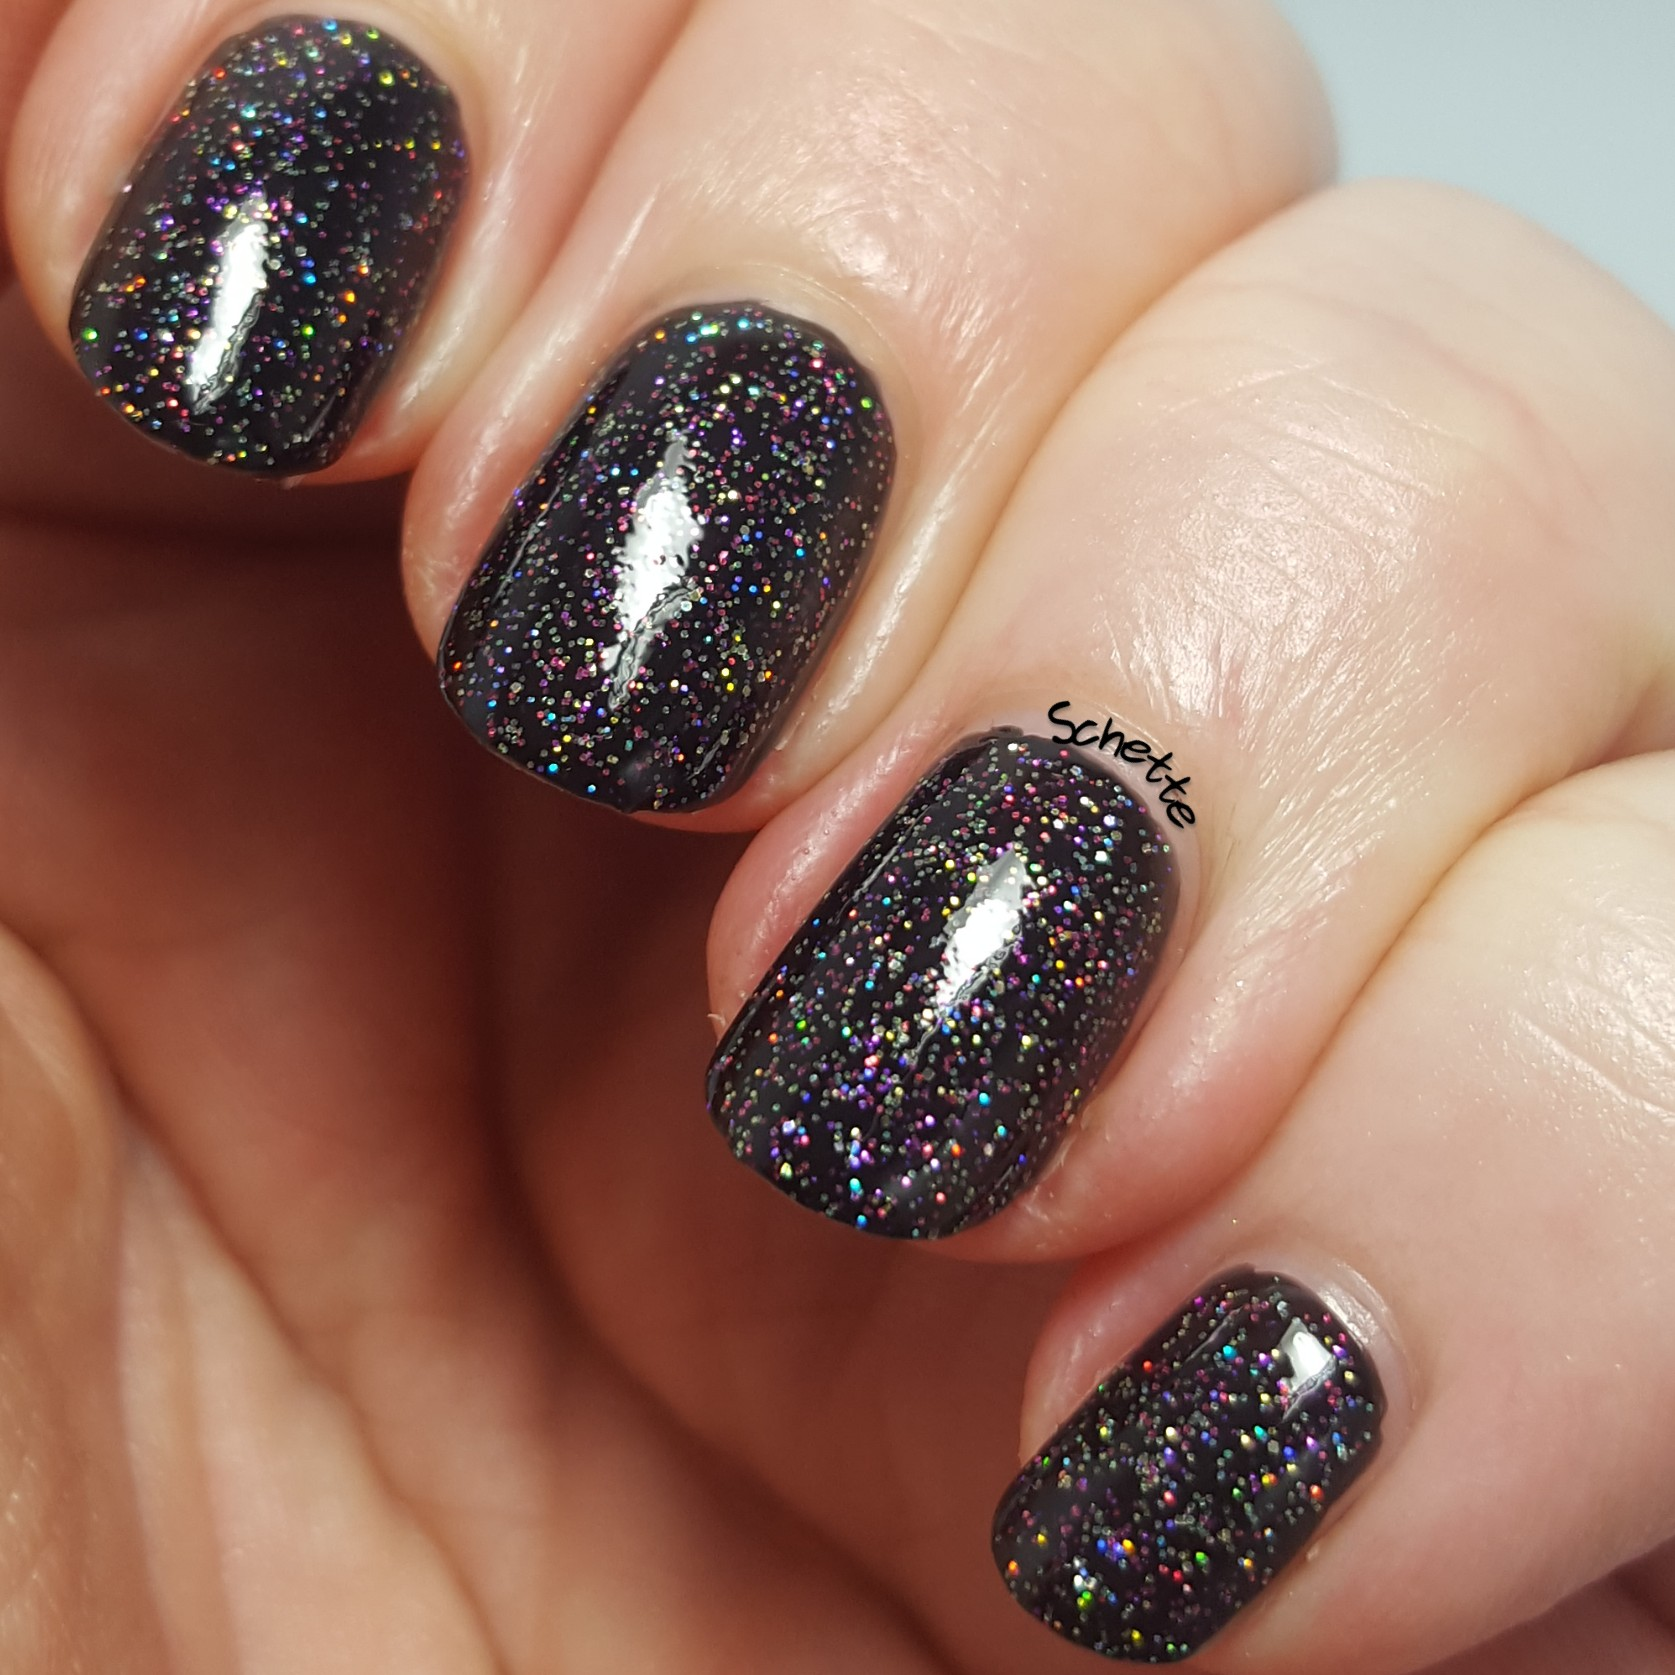 Girly Bits - Into the nigh